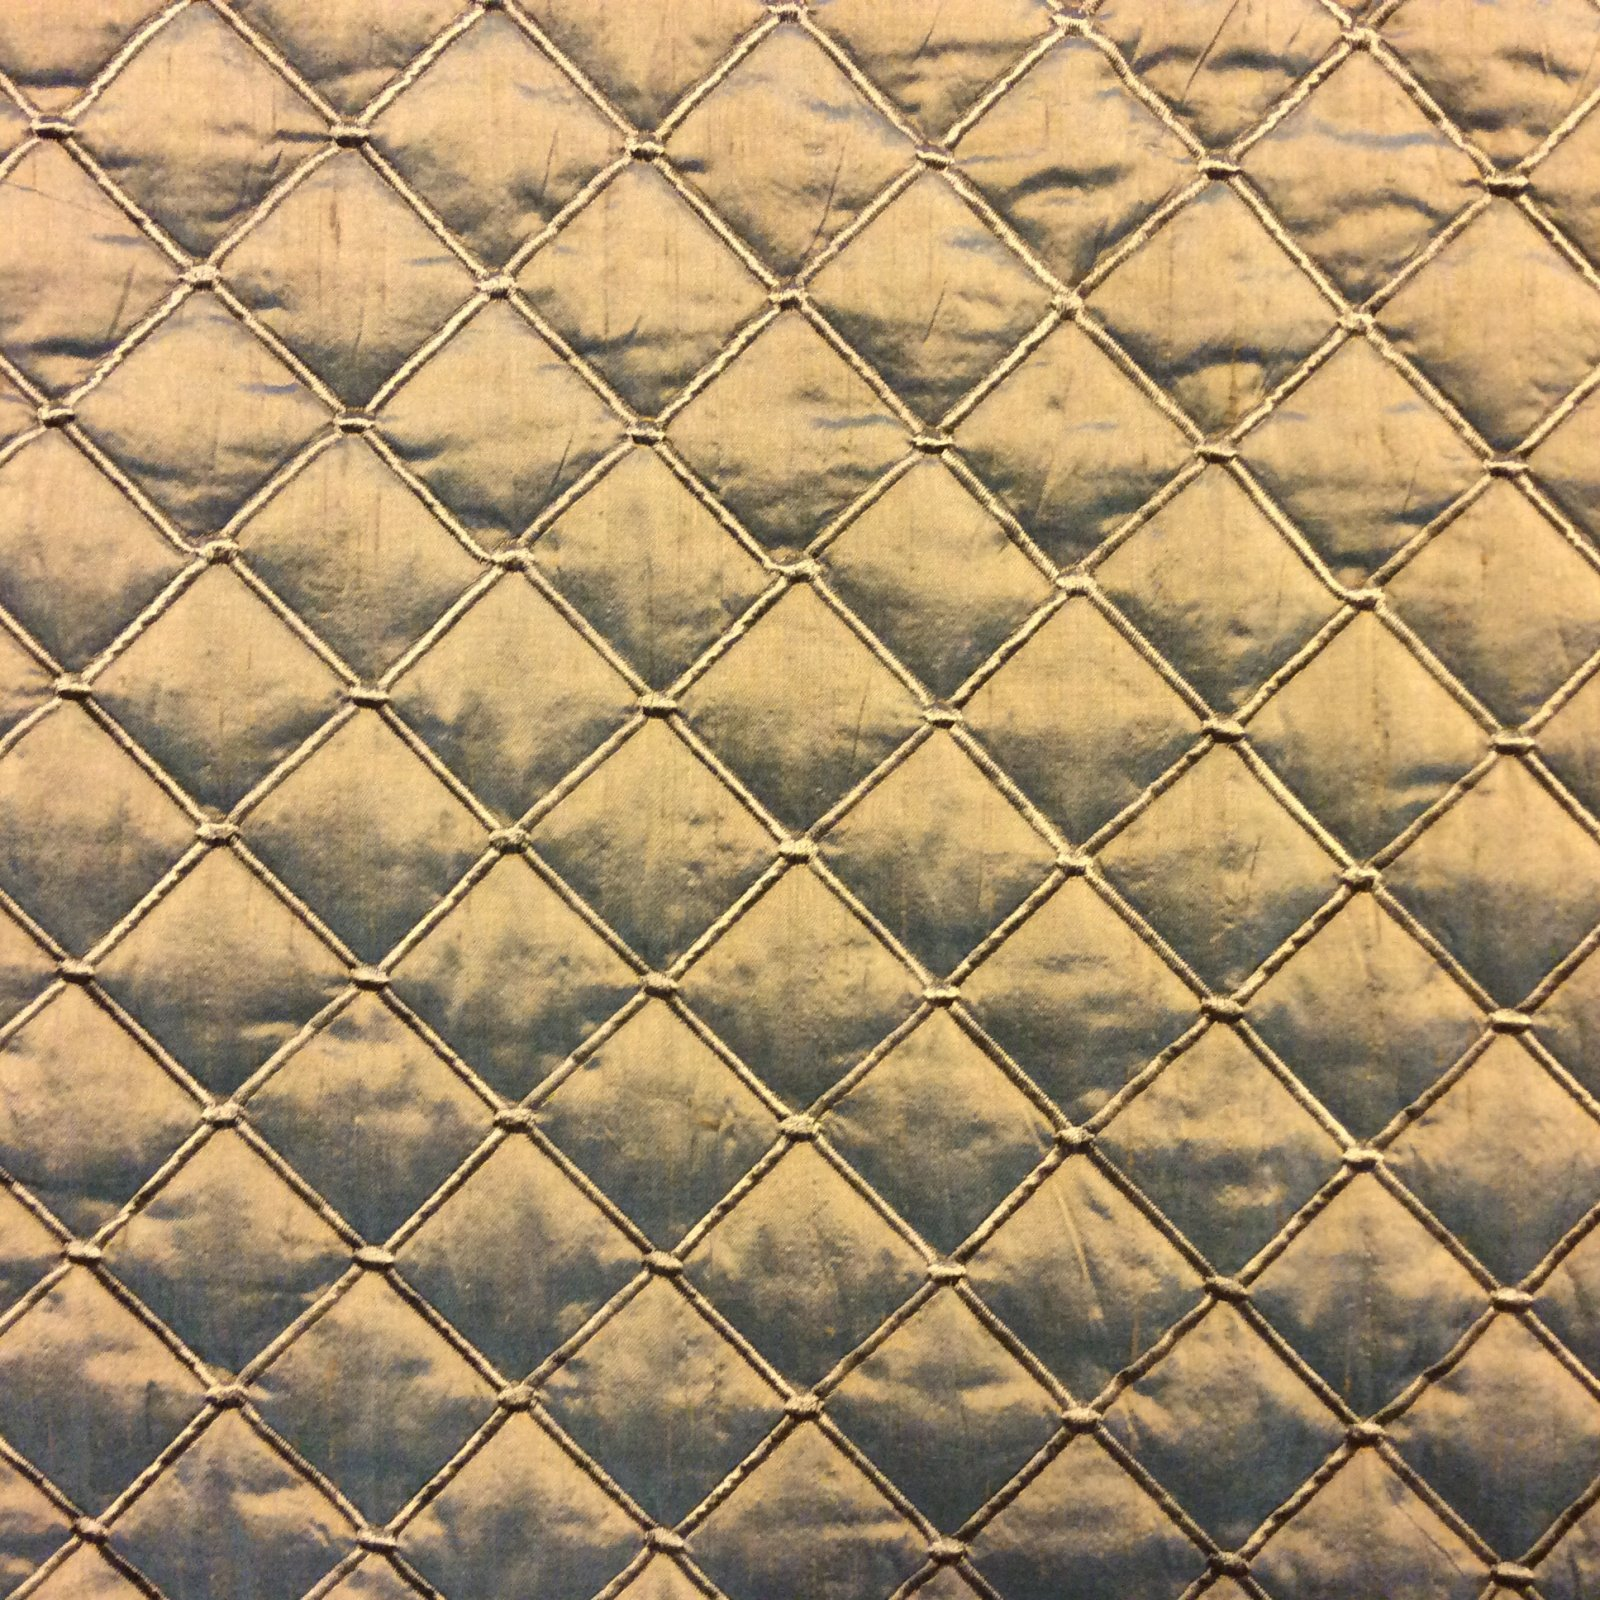 Silk Dupioni Golden Taupe with an Aqua Crossthread Quilted and Embroidered High End Luxury Home Decor Upholstery Bedding Fabric HD58